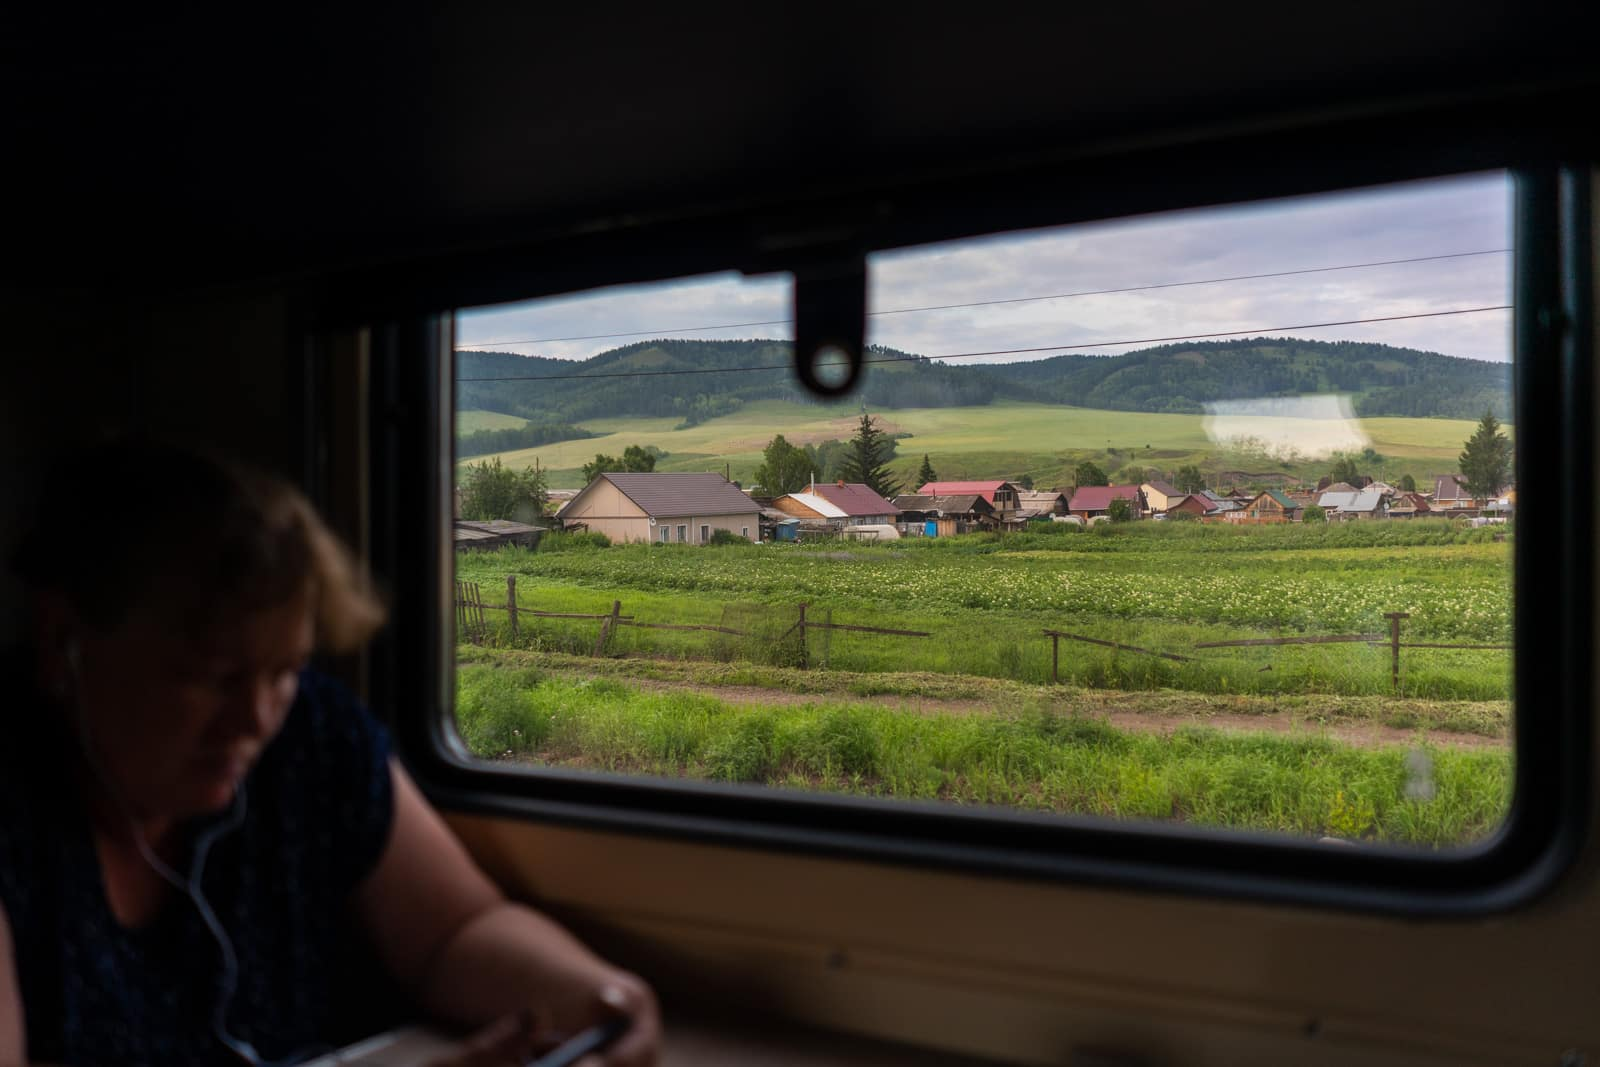 Siberian cottages and landscape from train window in Russia